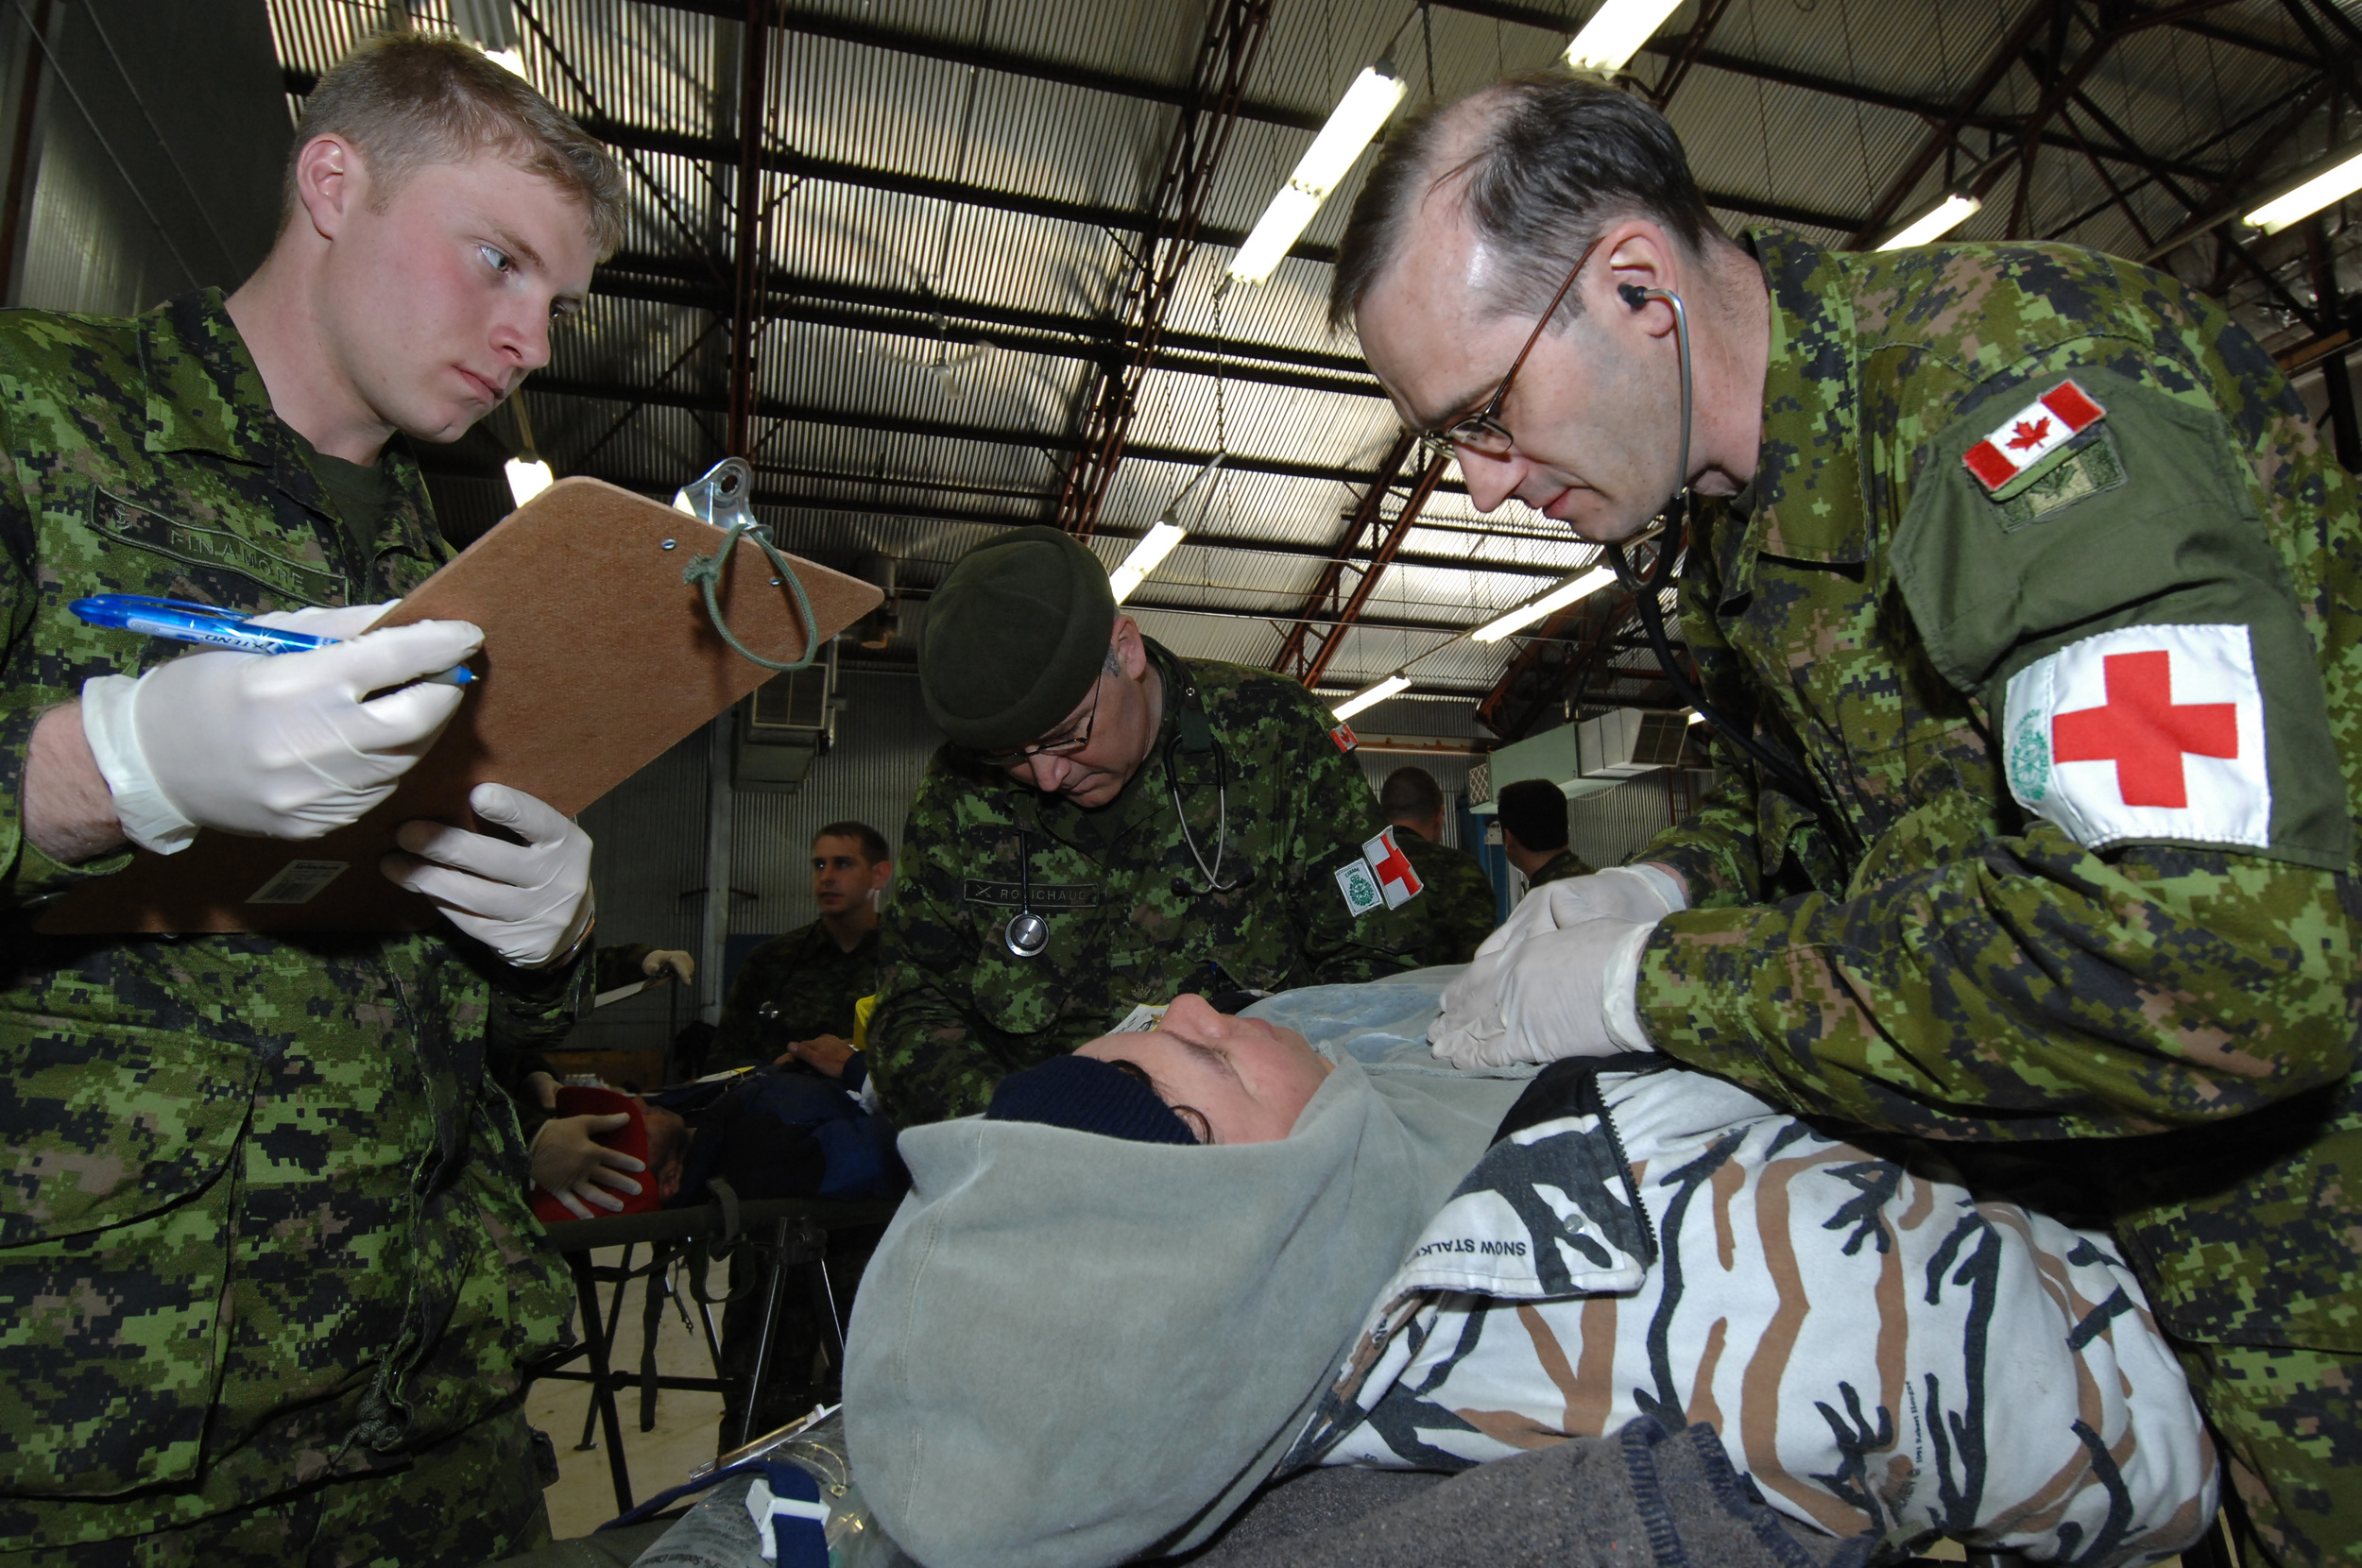 Physician assistant Master Warrant Officer Lorne Turner (right) and medical technician Master Corporal Richard Robichaud (centre) of 2 Field Ambulance in Petawawa, Ontario, examine Ranger Robert Buckle of Aklavik, Northwest Territories, as medical technician Ordinary Seaman Dave Finamore records their findings.